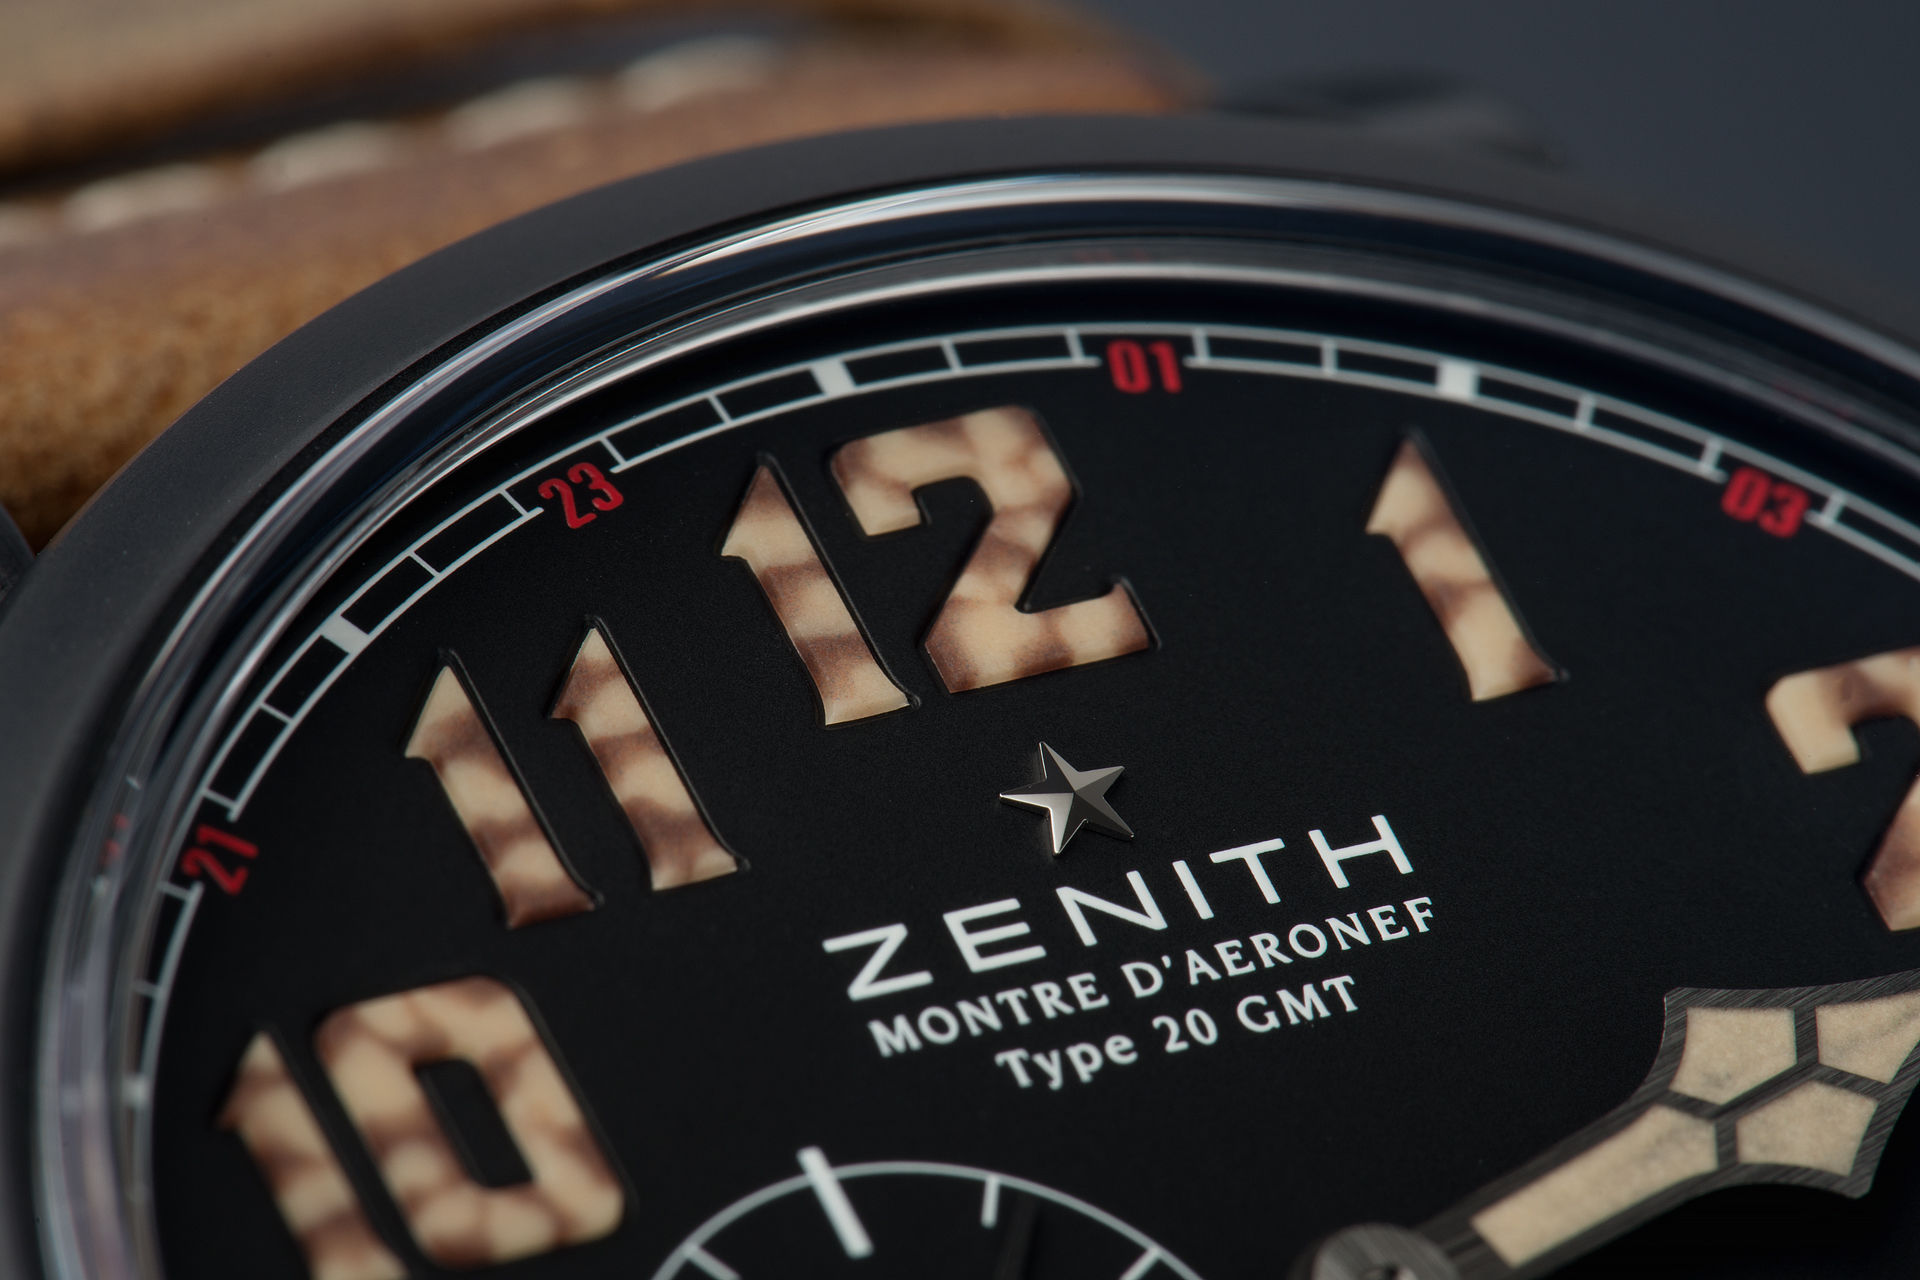 ref 96.2431.693 | 'Wright Brothers' 1903 | Zenith Pilot